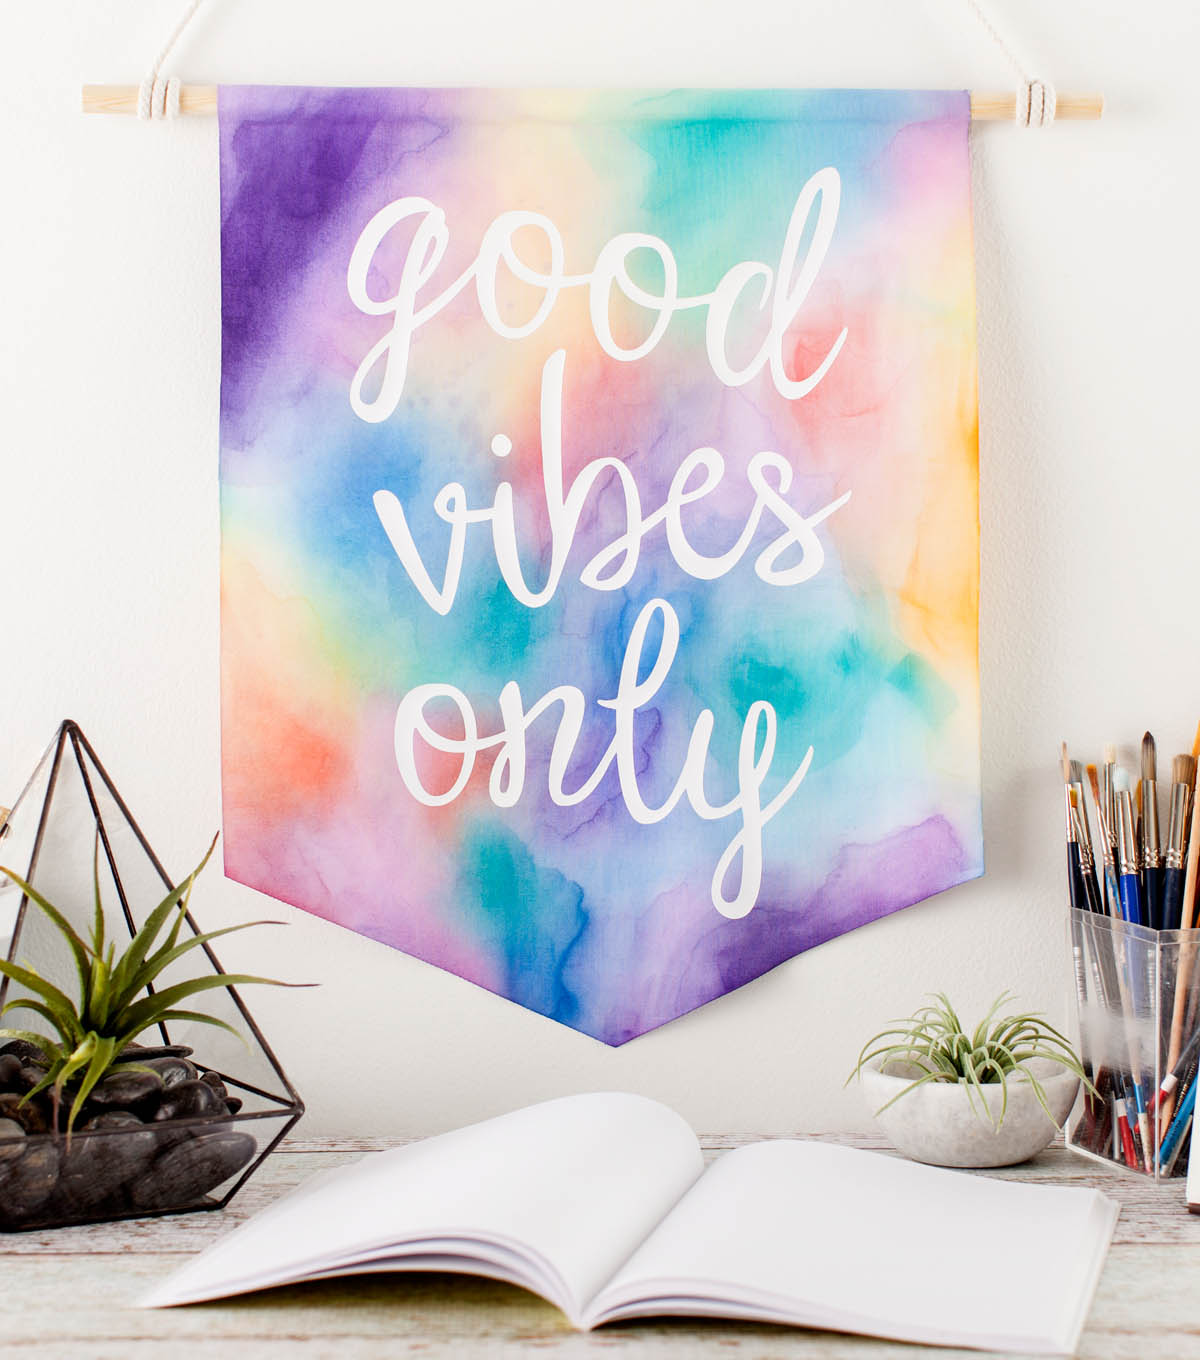 How To Make A Good Vibes Only Wall Hanging